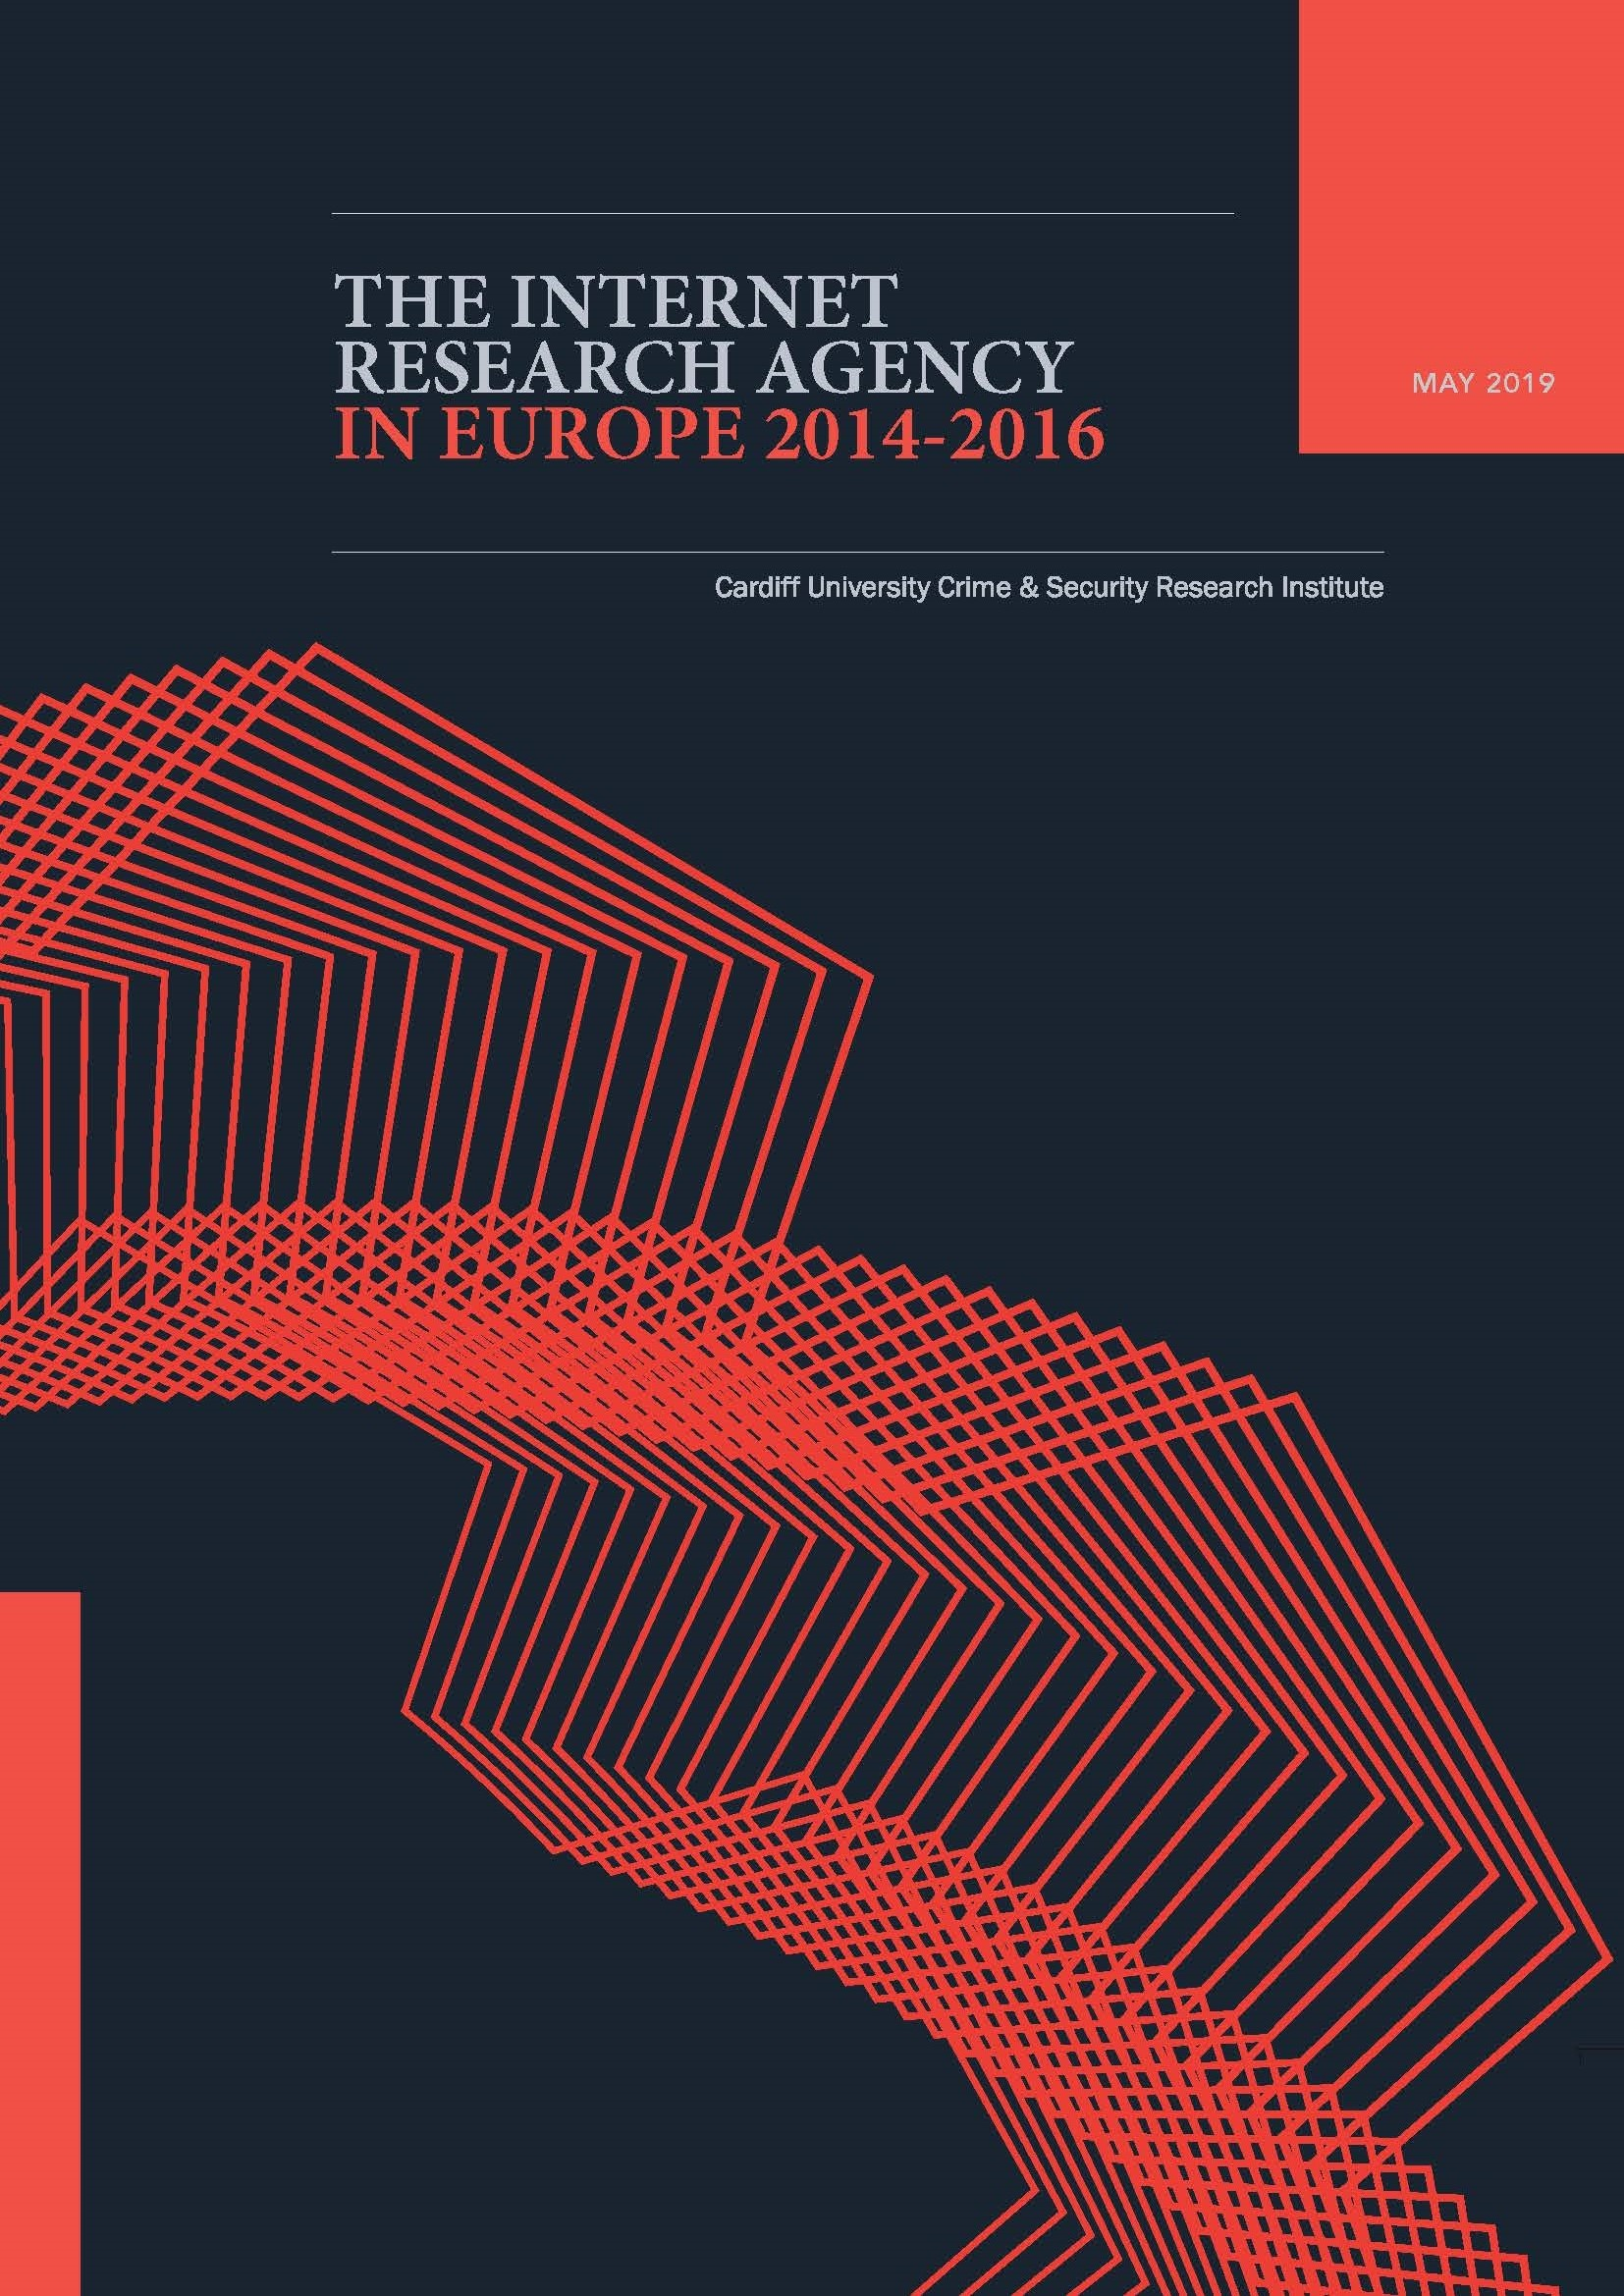 The Internet Research Agency In Europe 2014-2016